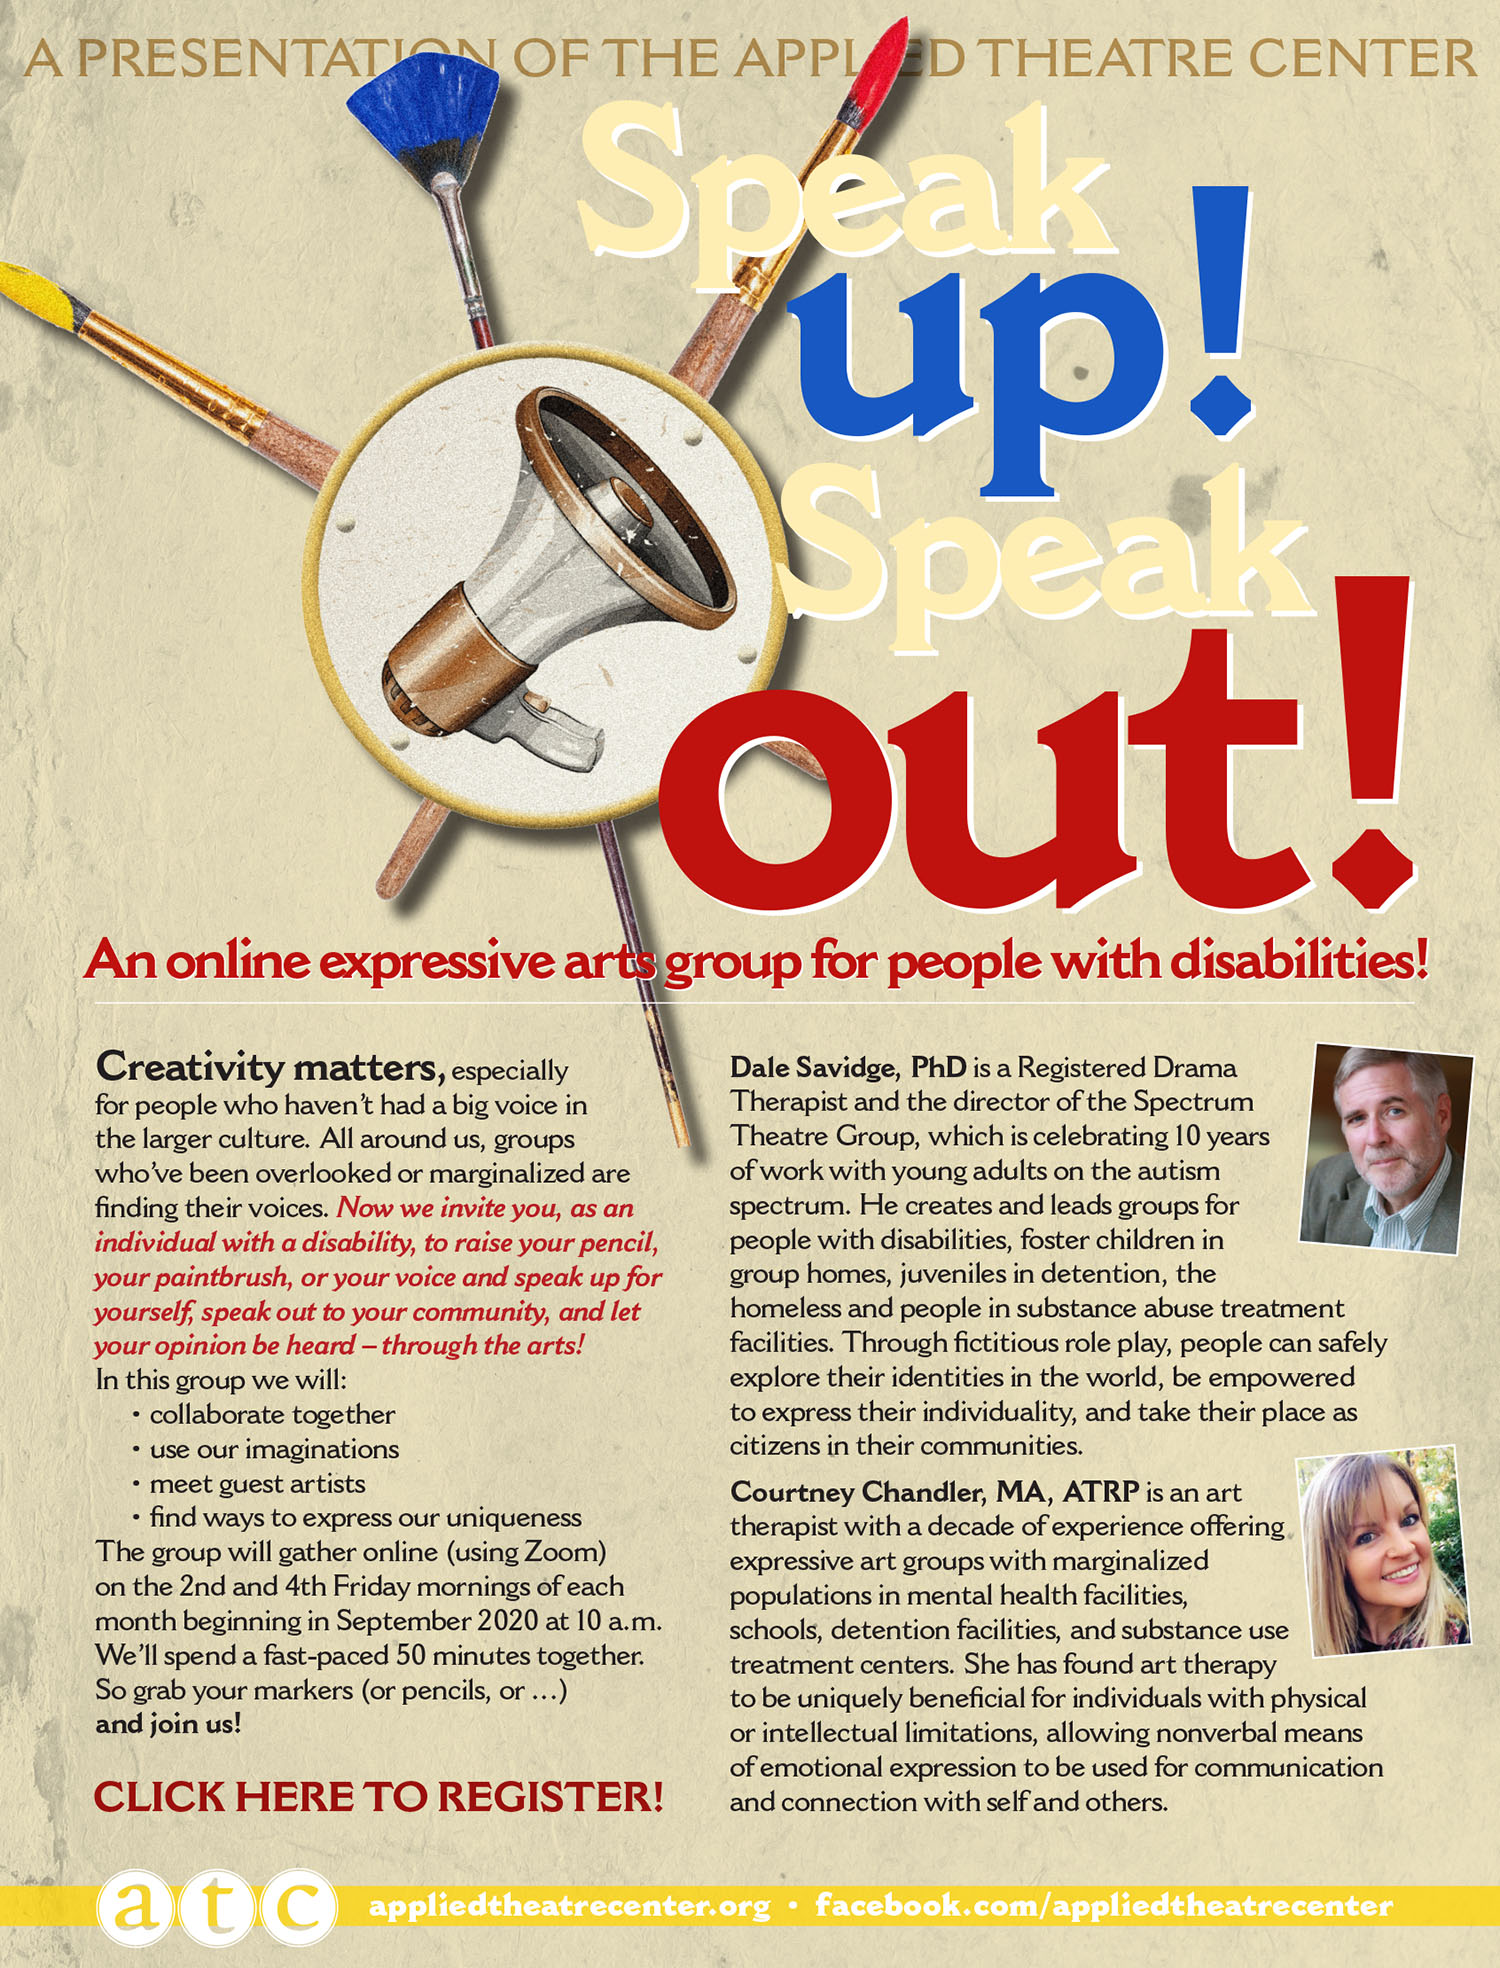 Speak Out! Speak Up! is an online group for adults with disabilities who want to find their voice and express themselves through the arts.